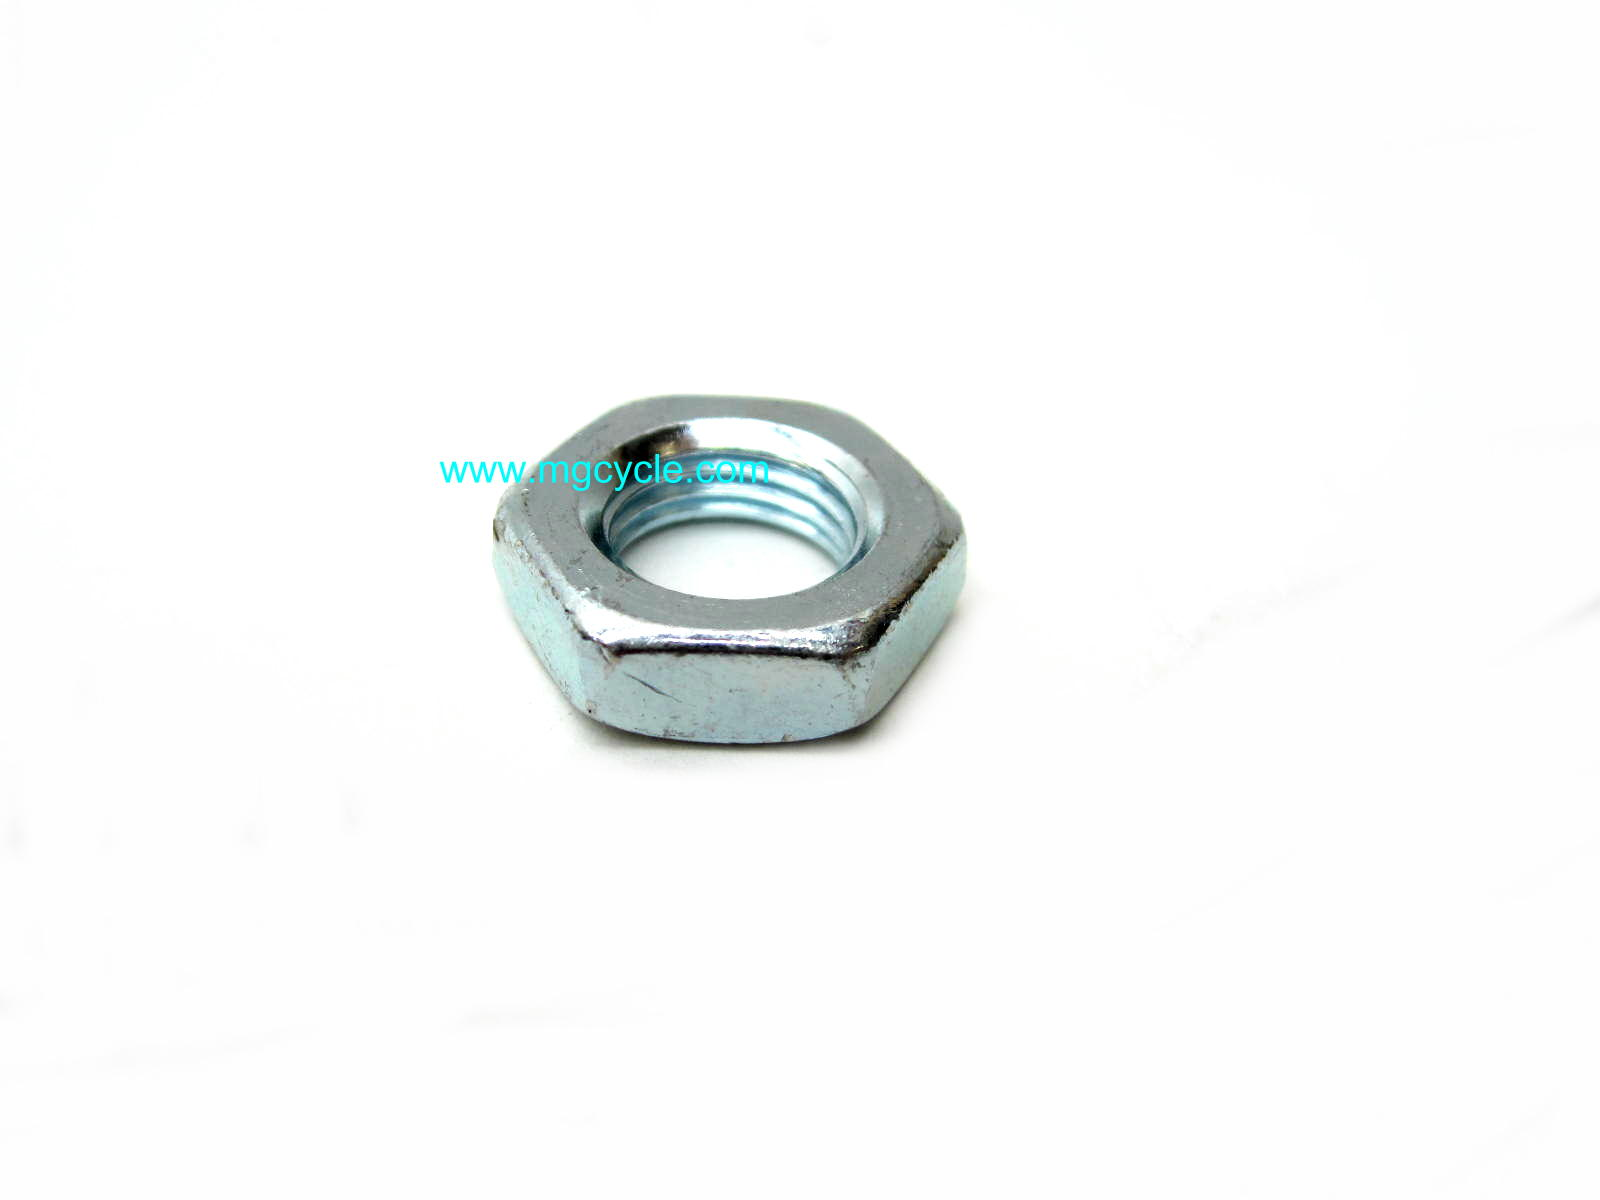 Jam nut, frame bolt M12 fine thread